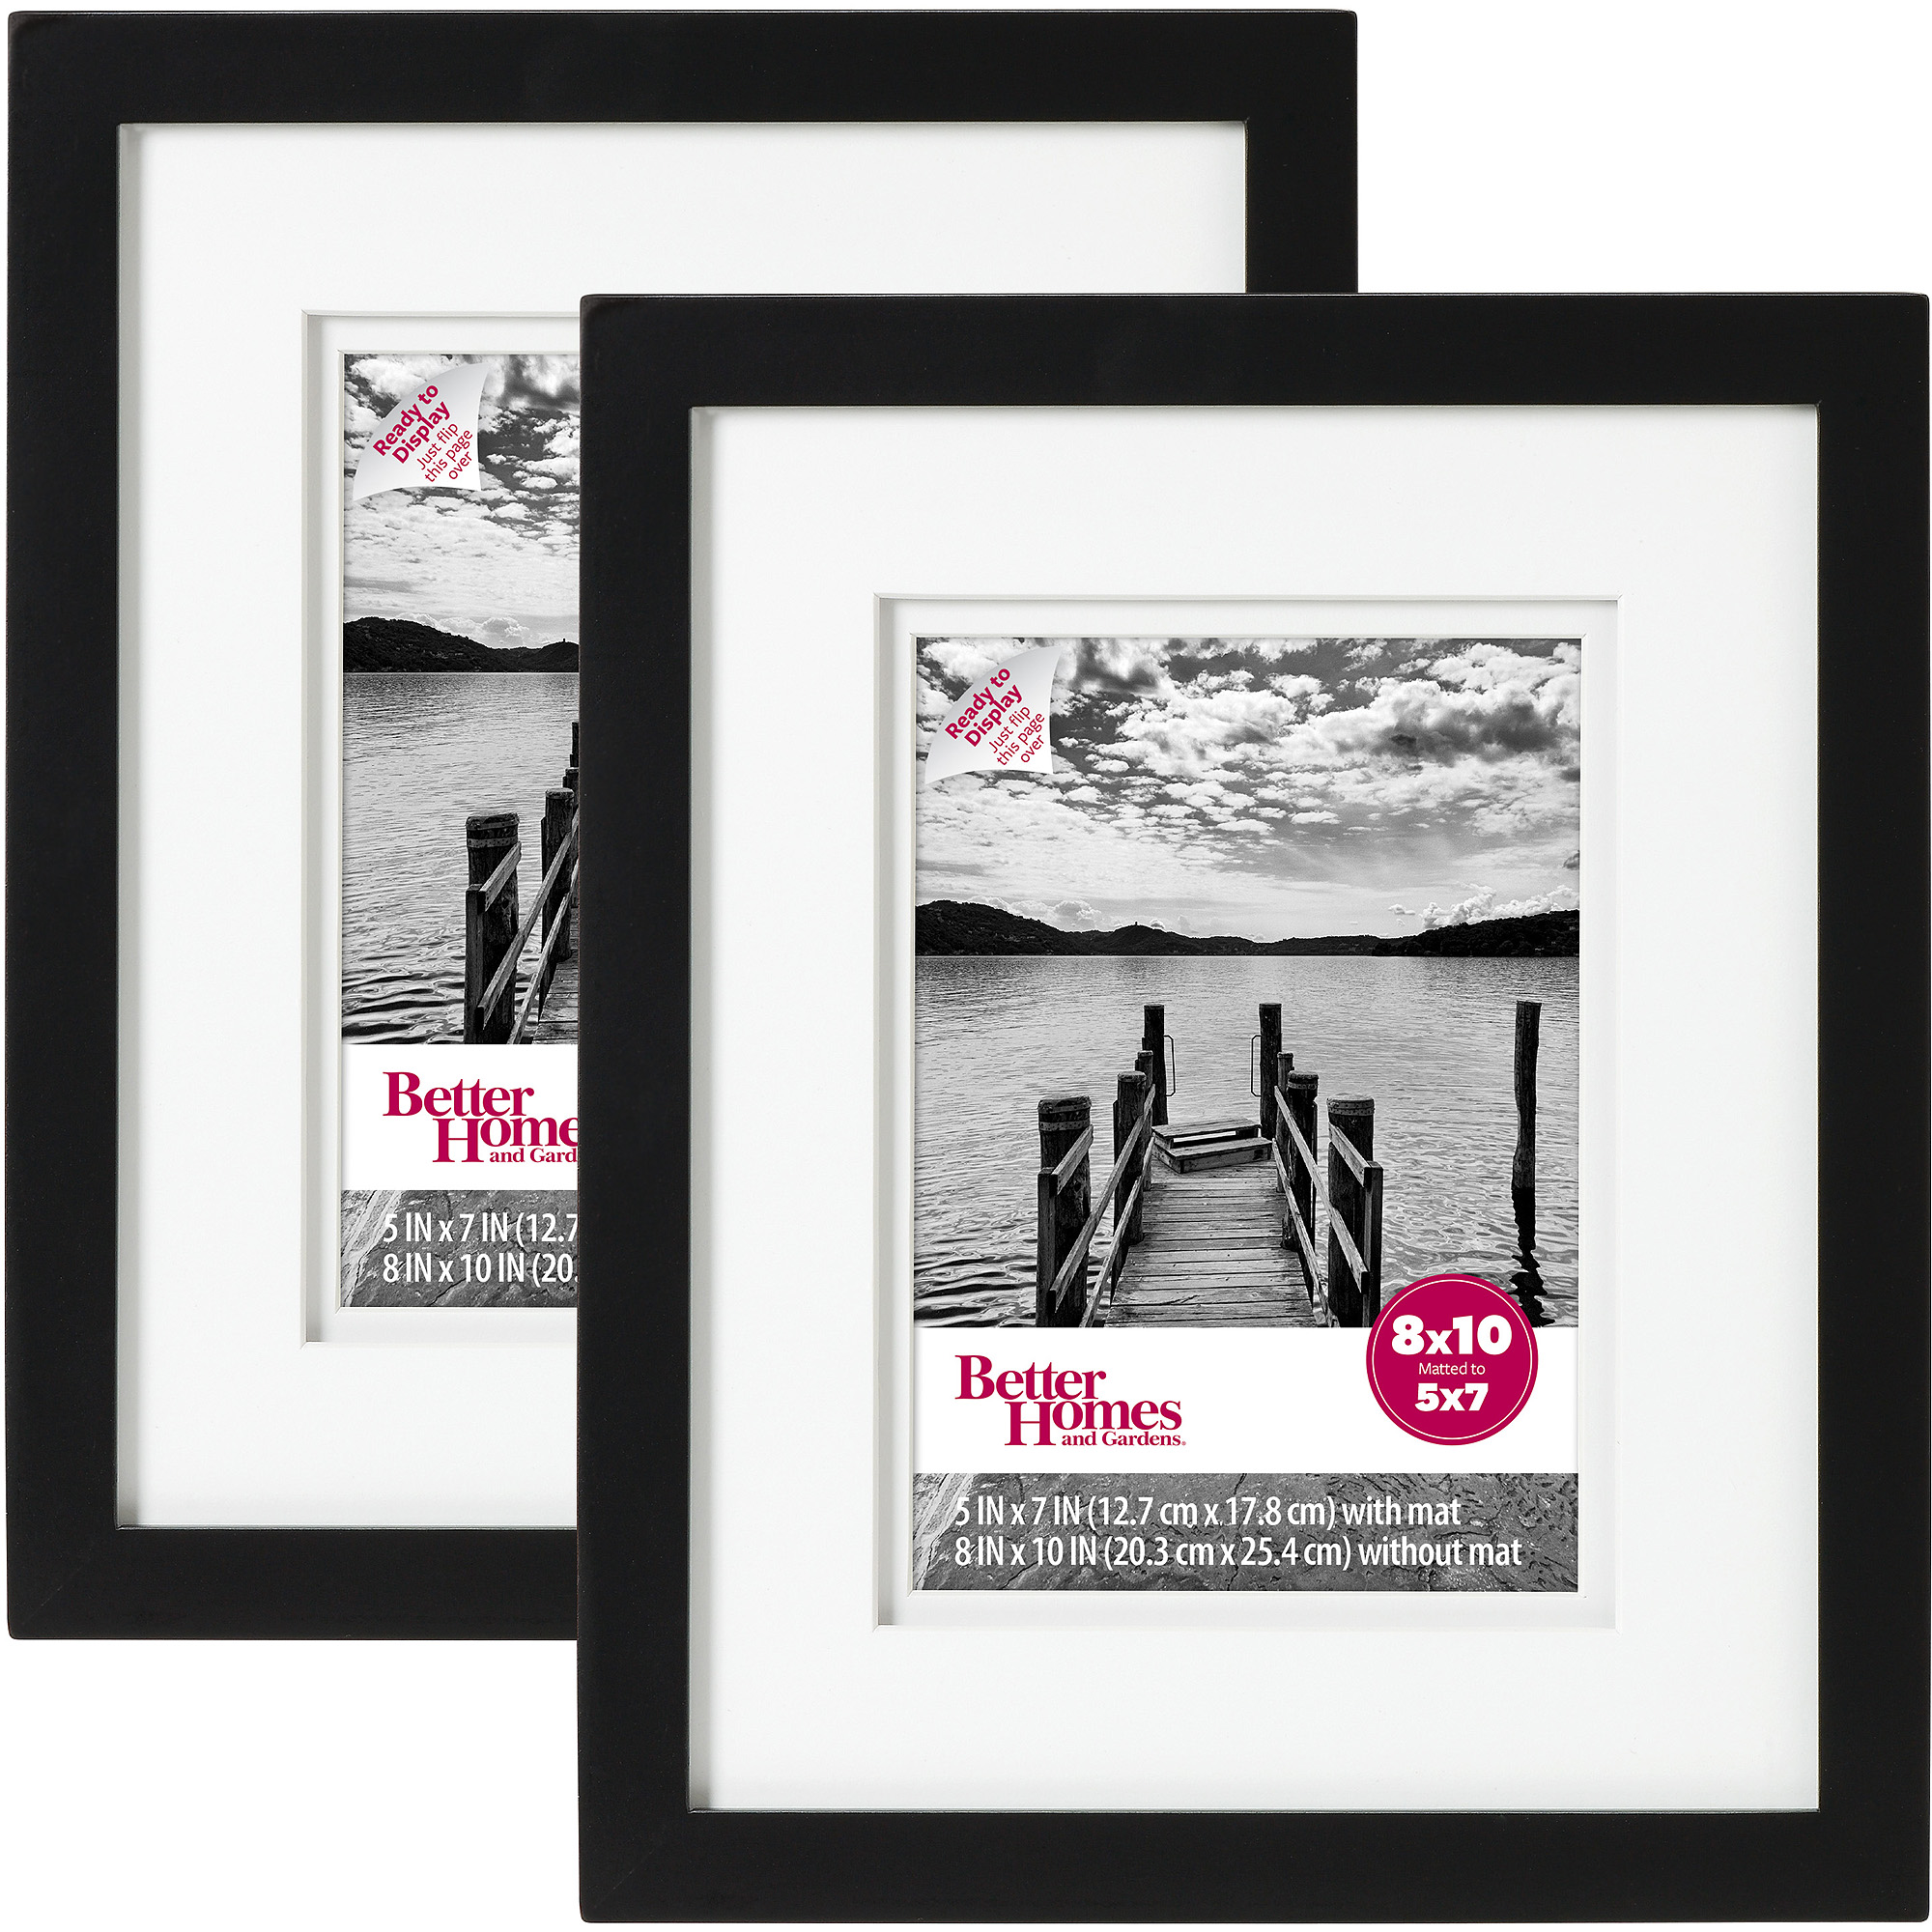 Better Homes and Gardens Picture Frame Black Set of 2 8x10